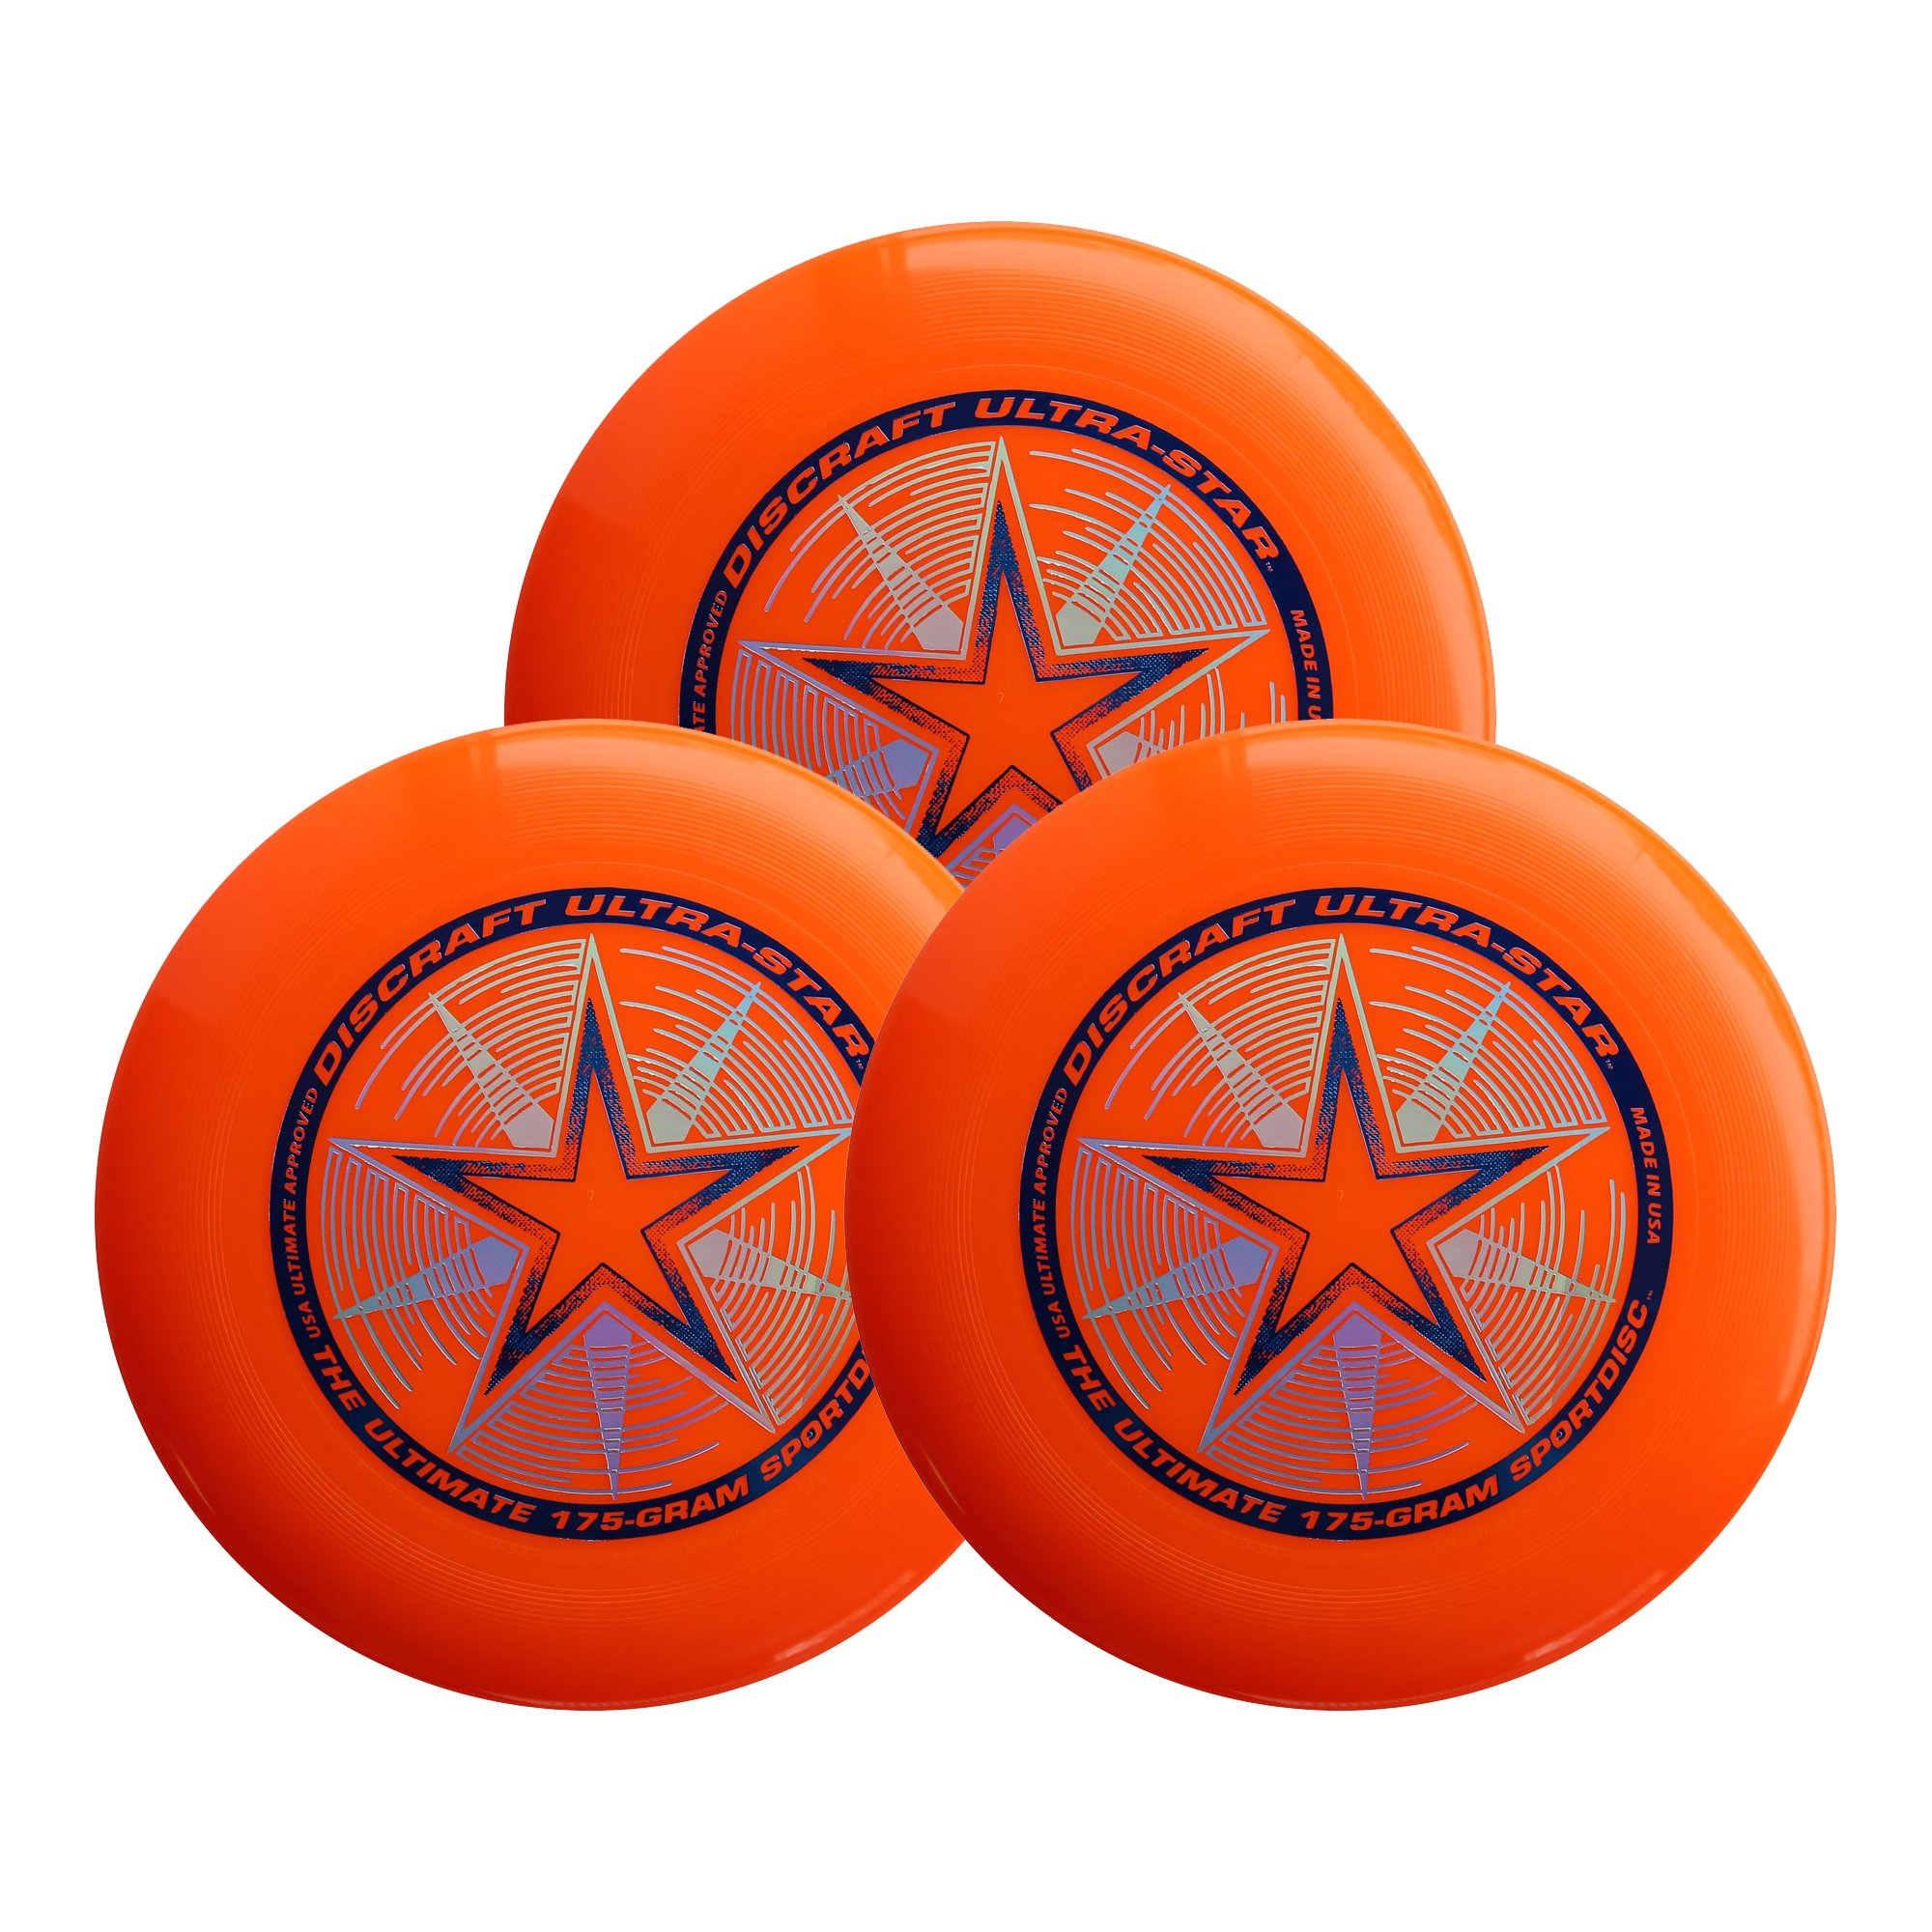 Discraft Ultra-Star 175g Ultimate Sportdisc Orange (3 Pack) by Discraft